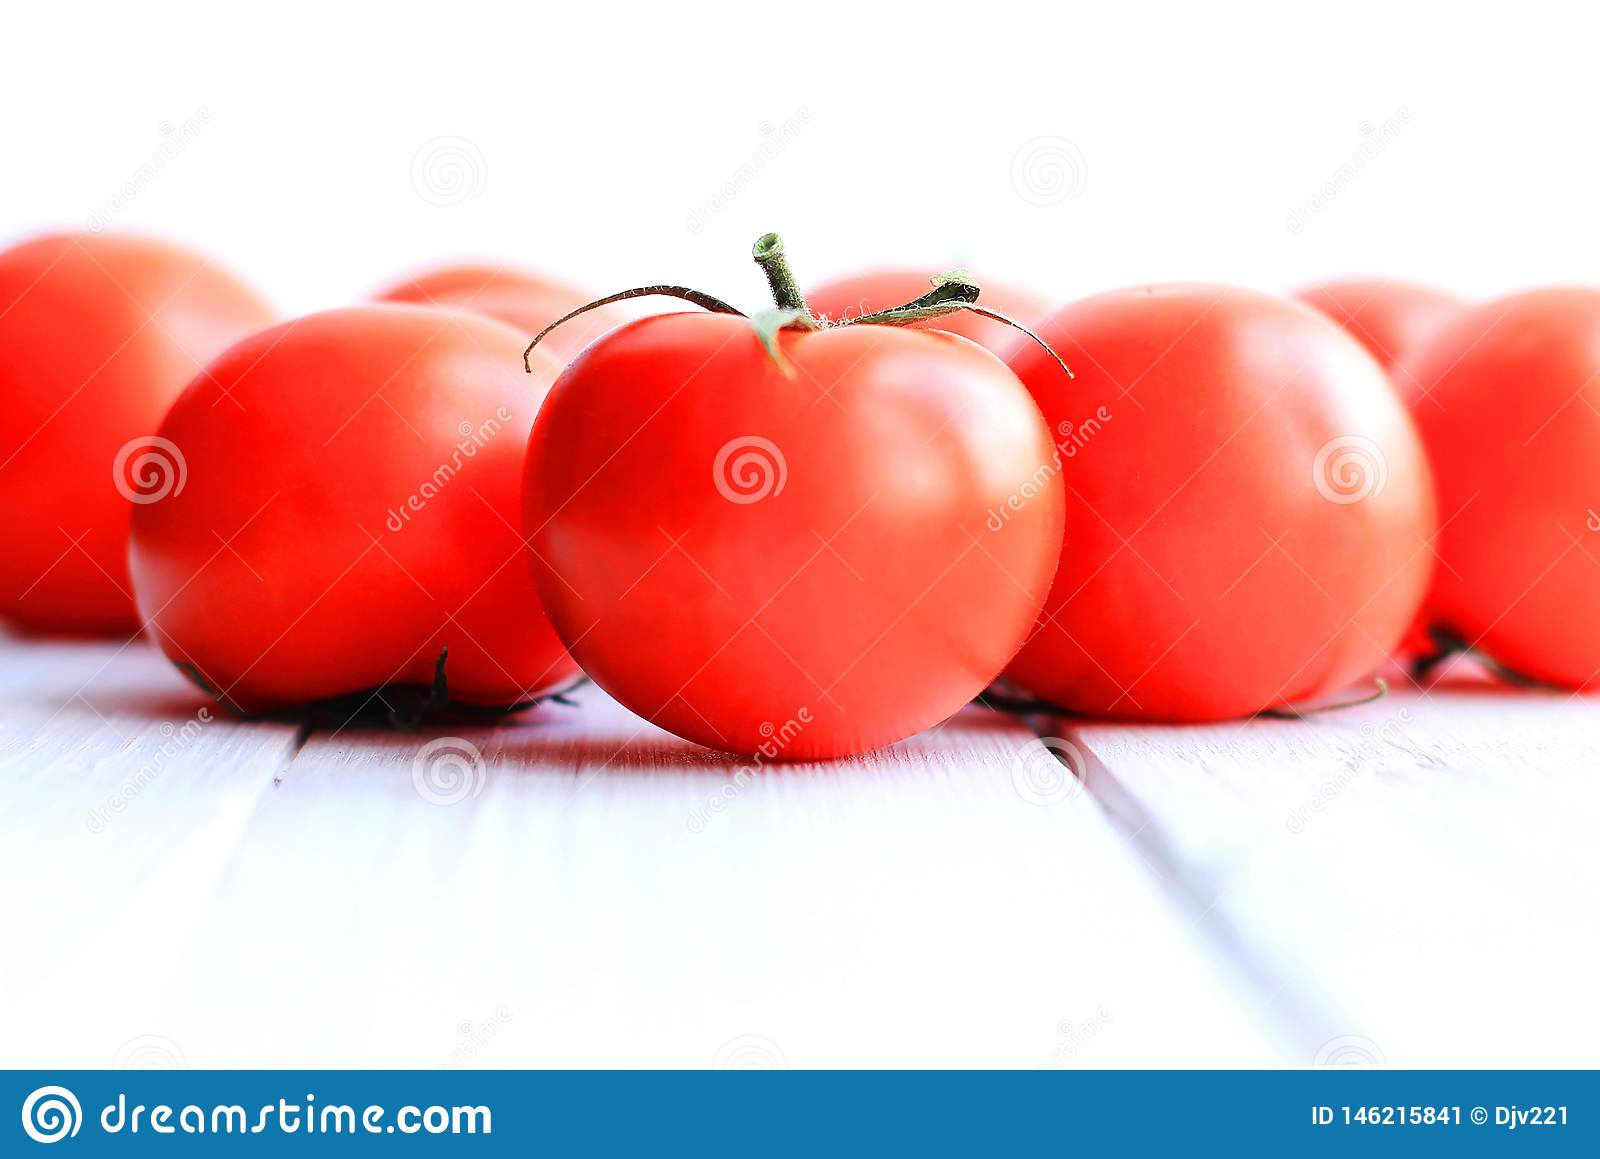 Red tomatoes on a light wooden background